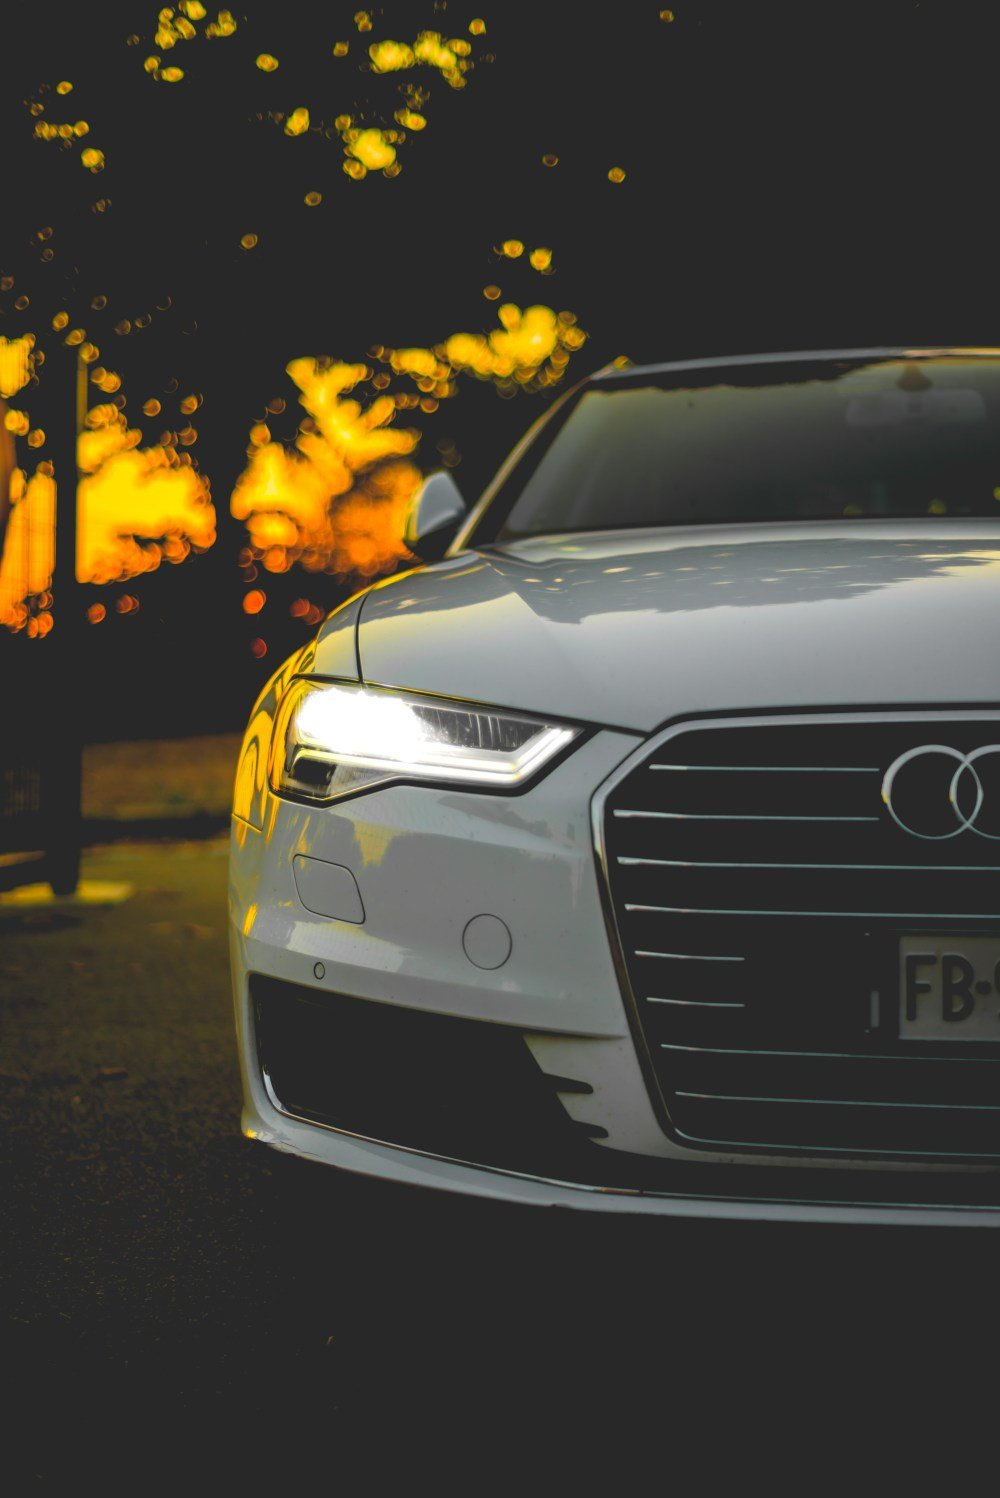 Latest 500 Audi Pictures Hd Download Free Images On Unsplash Free Download